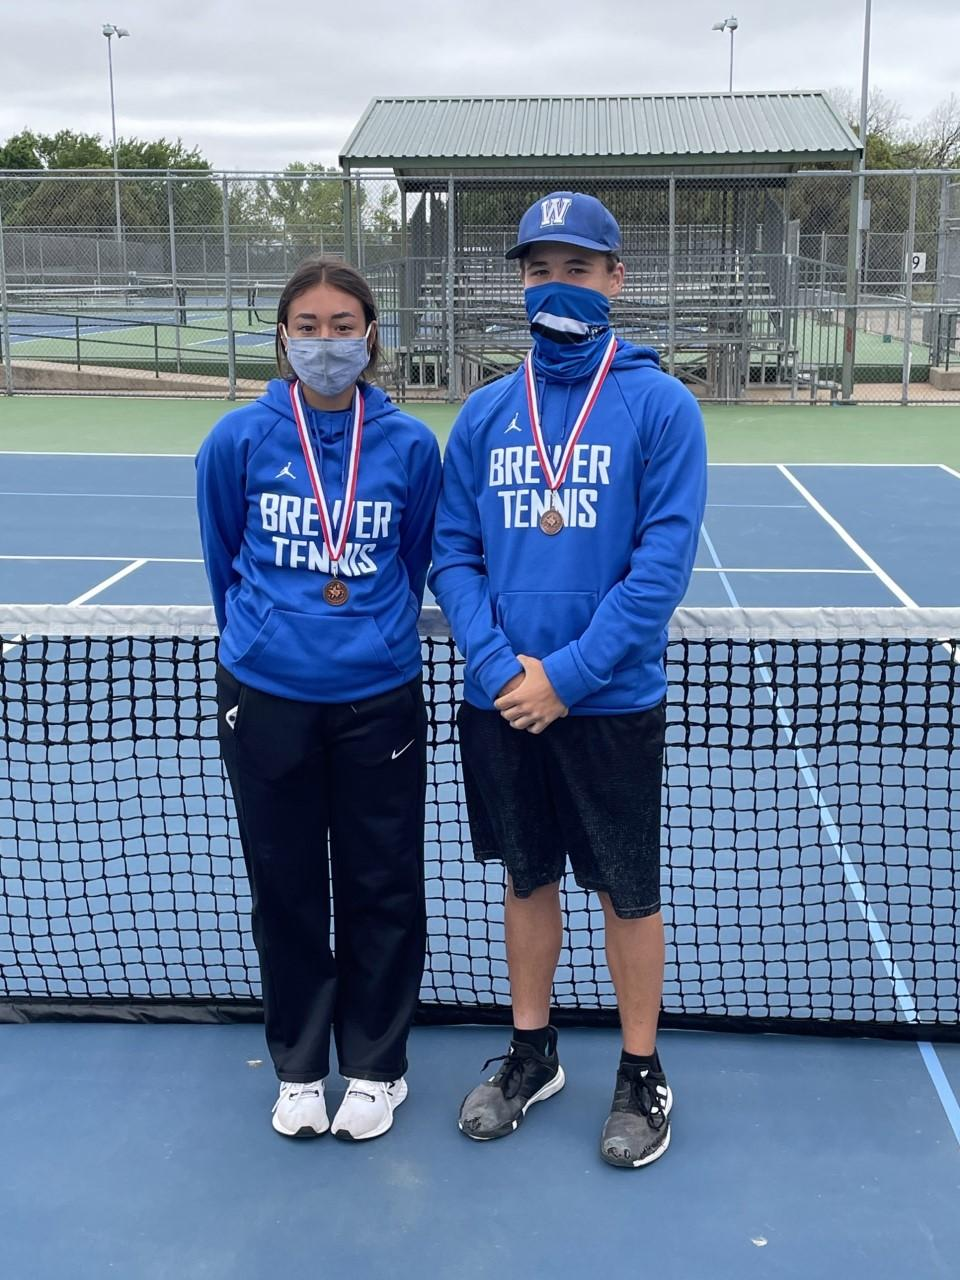 Nathan Thornbrough and Avery Brown placed fourth at district in mixed doubles, and they'll be regional alternates.